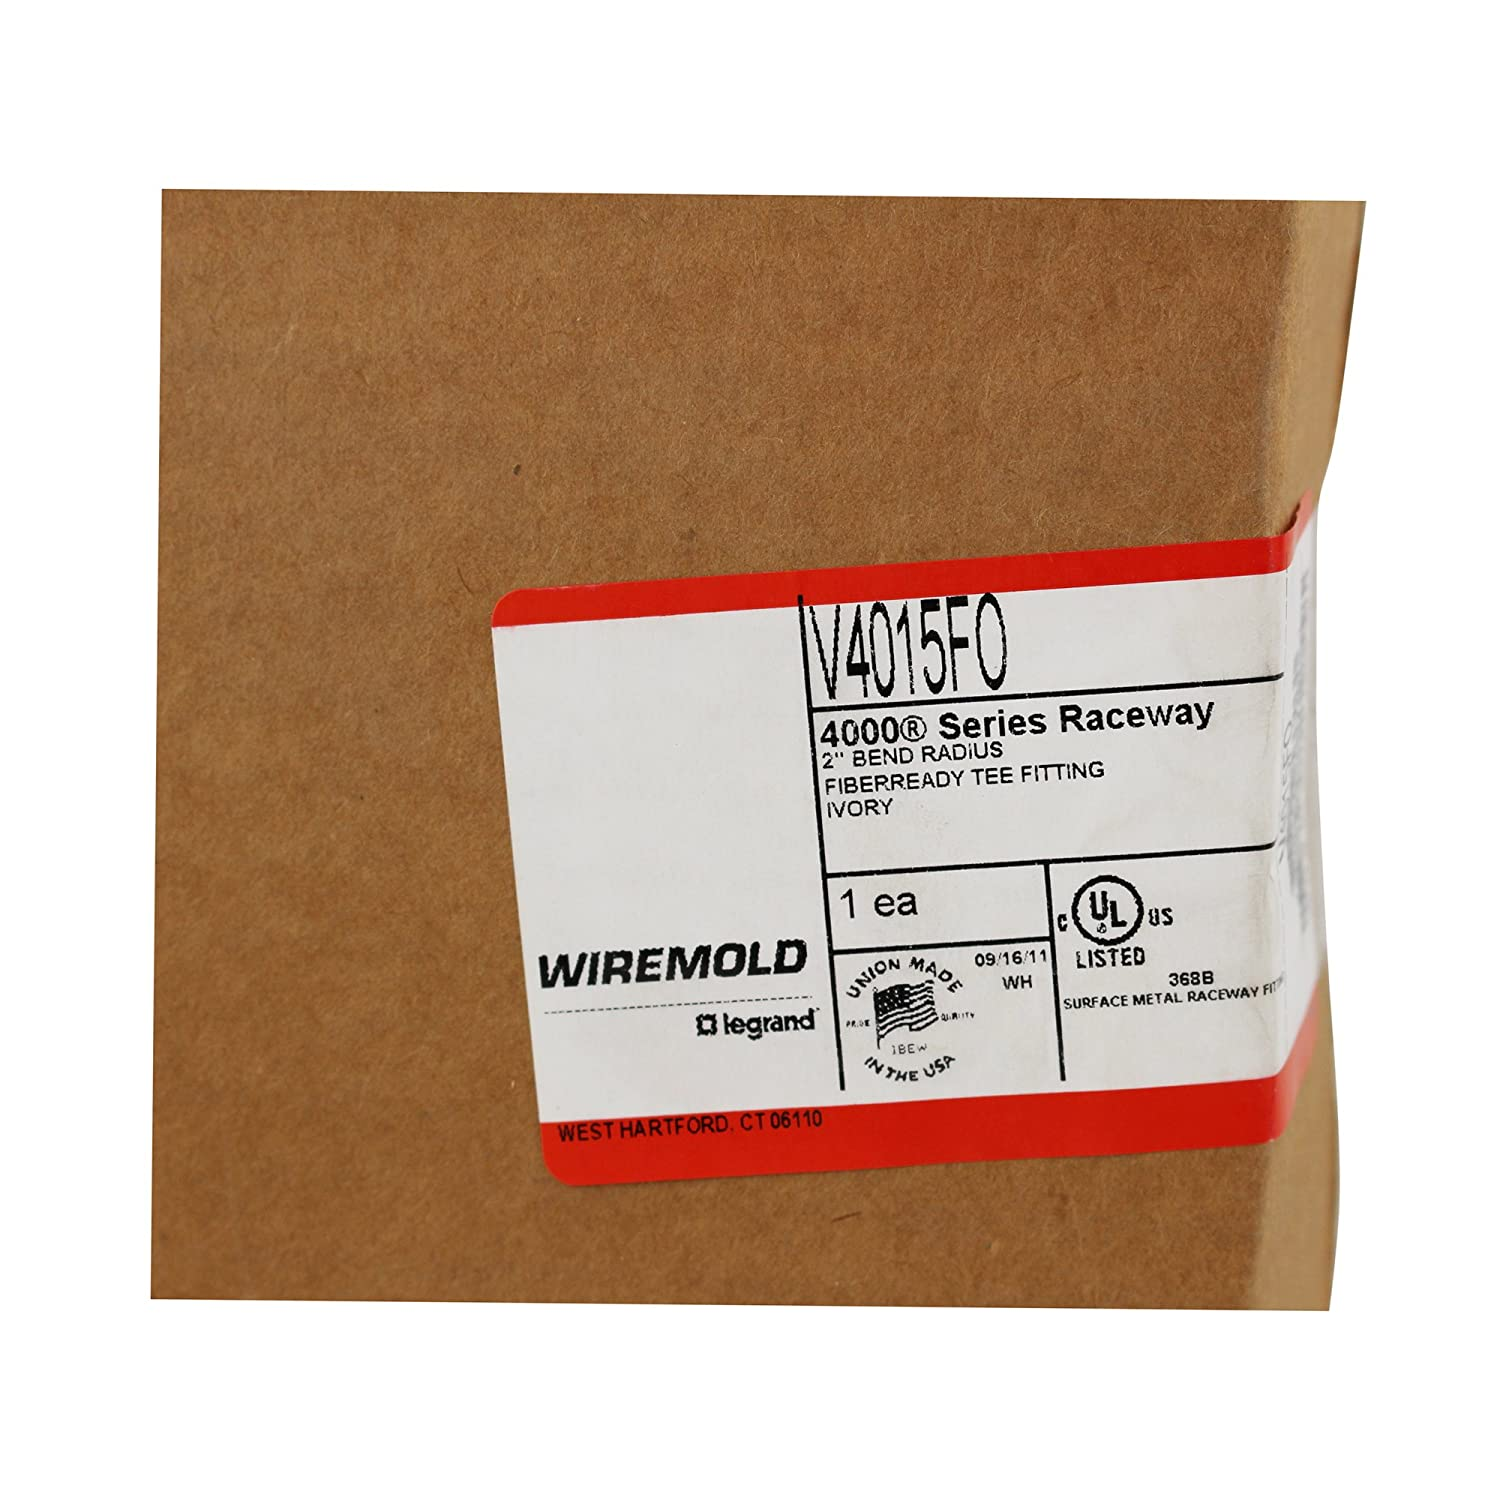 Amazon.com: Wiremold Legrand V4015FO 4000 Series Raceway 2\